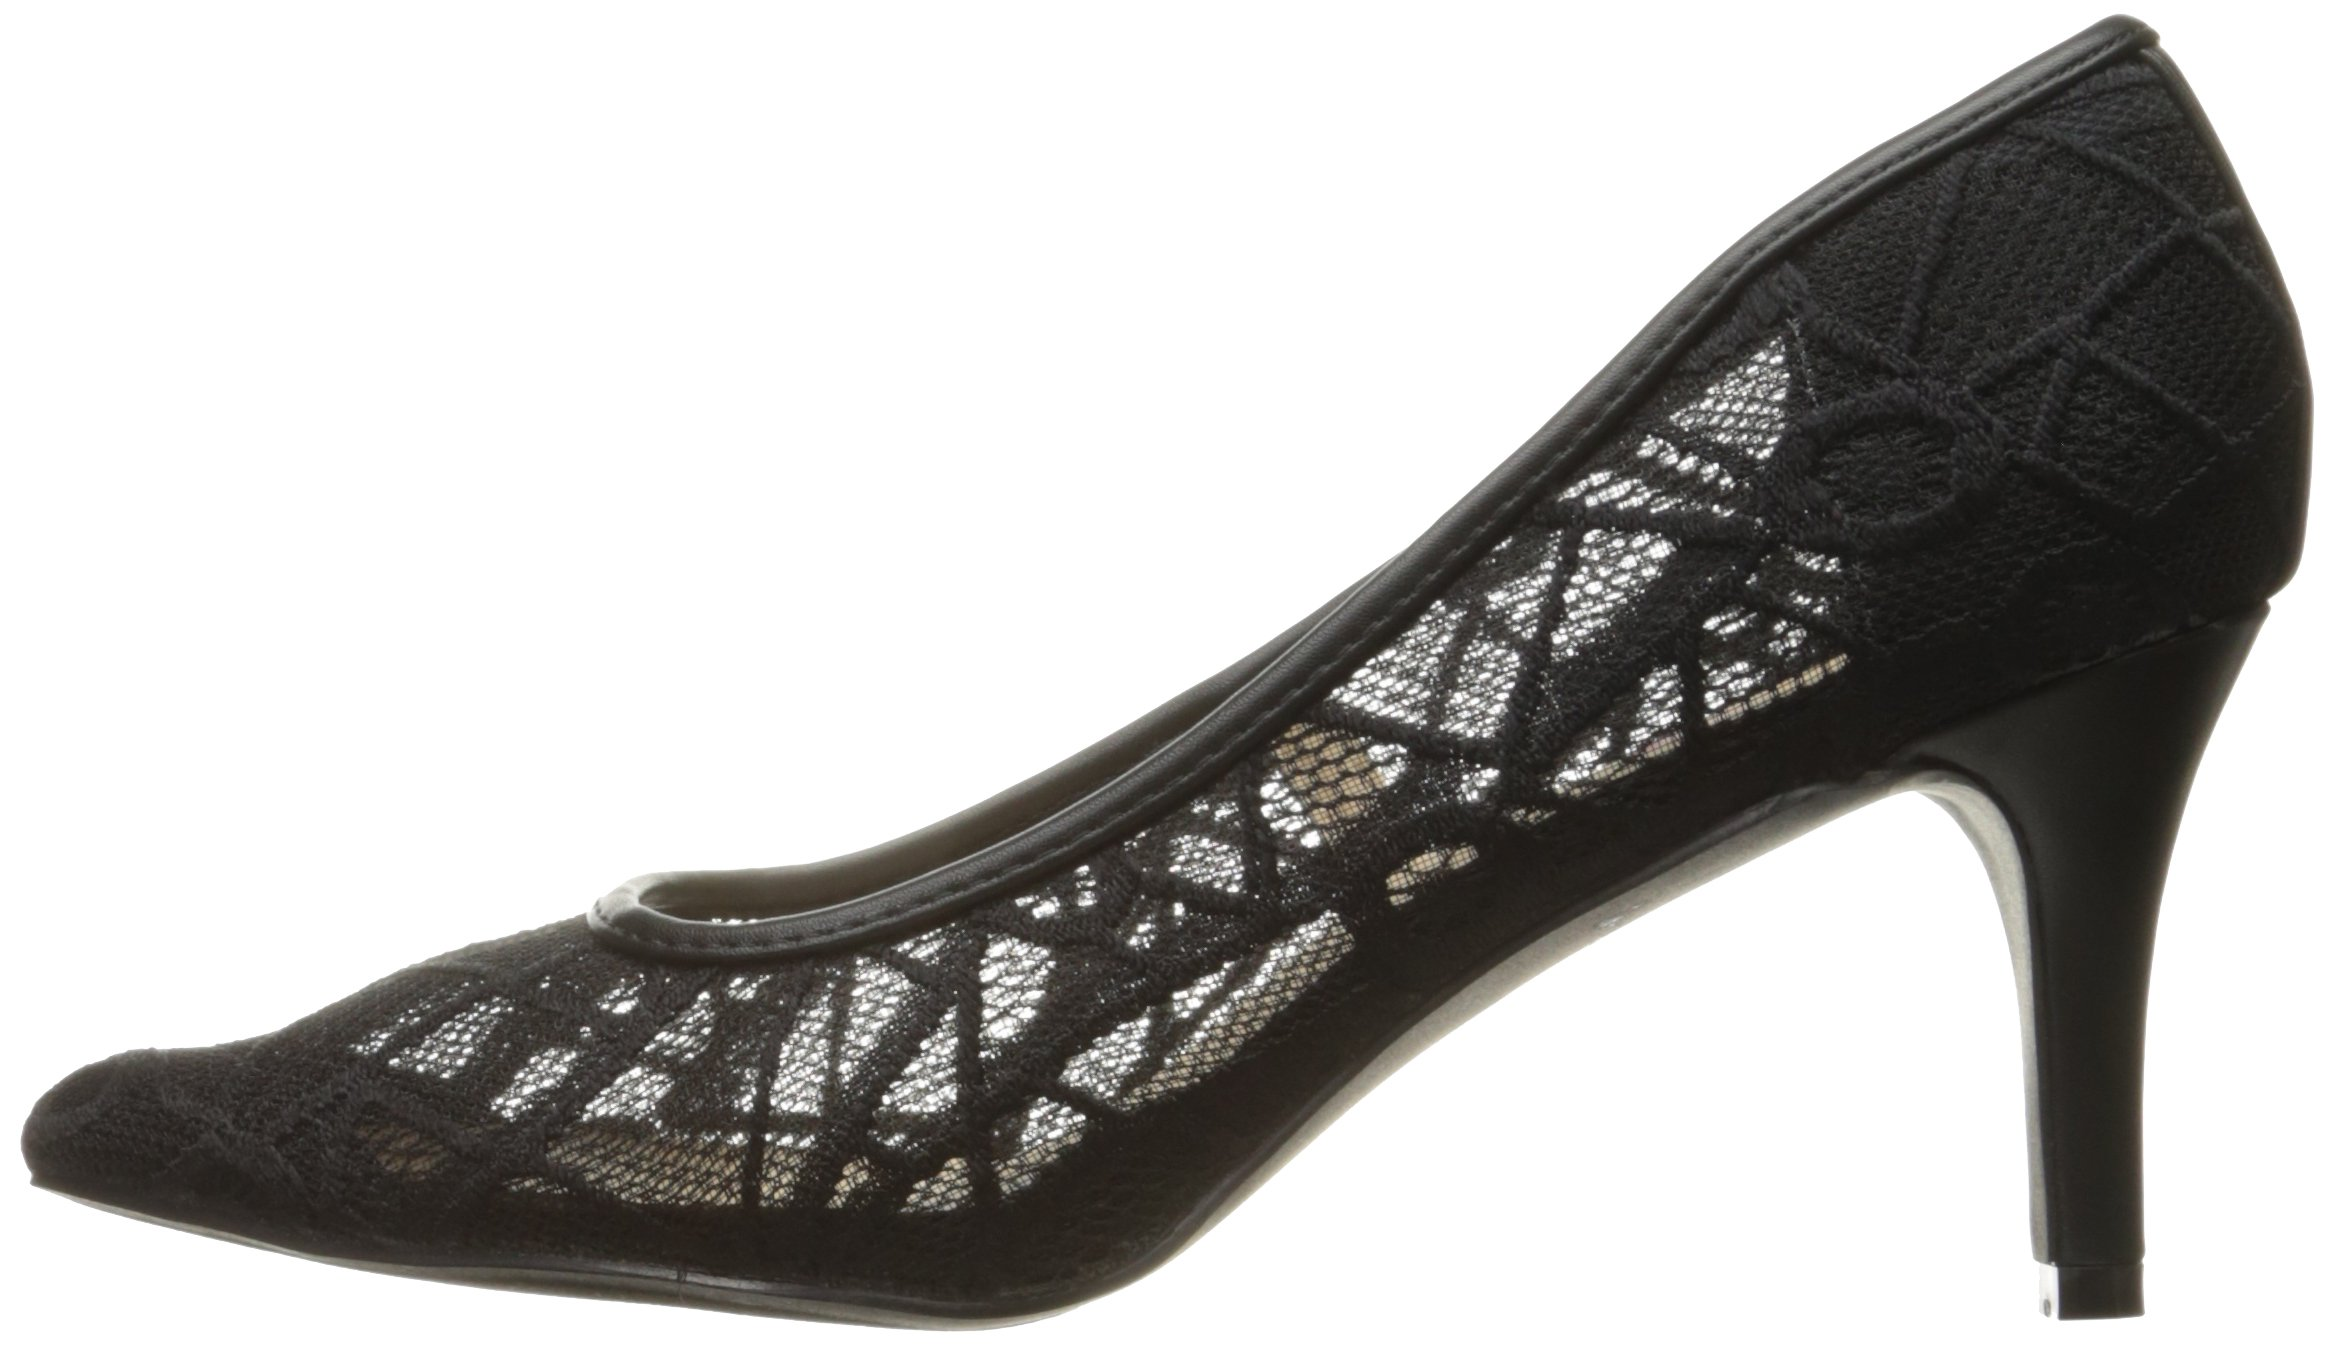 Penny Loves Kenny Women's Union Dress Pump, Black, 7.5 M US by Penny Loves Kenny (Image #5)